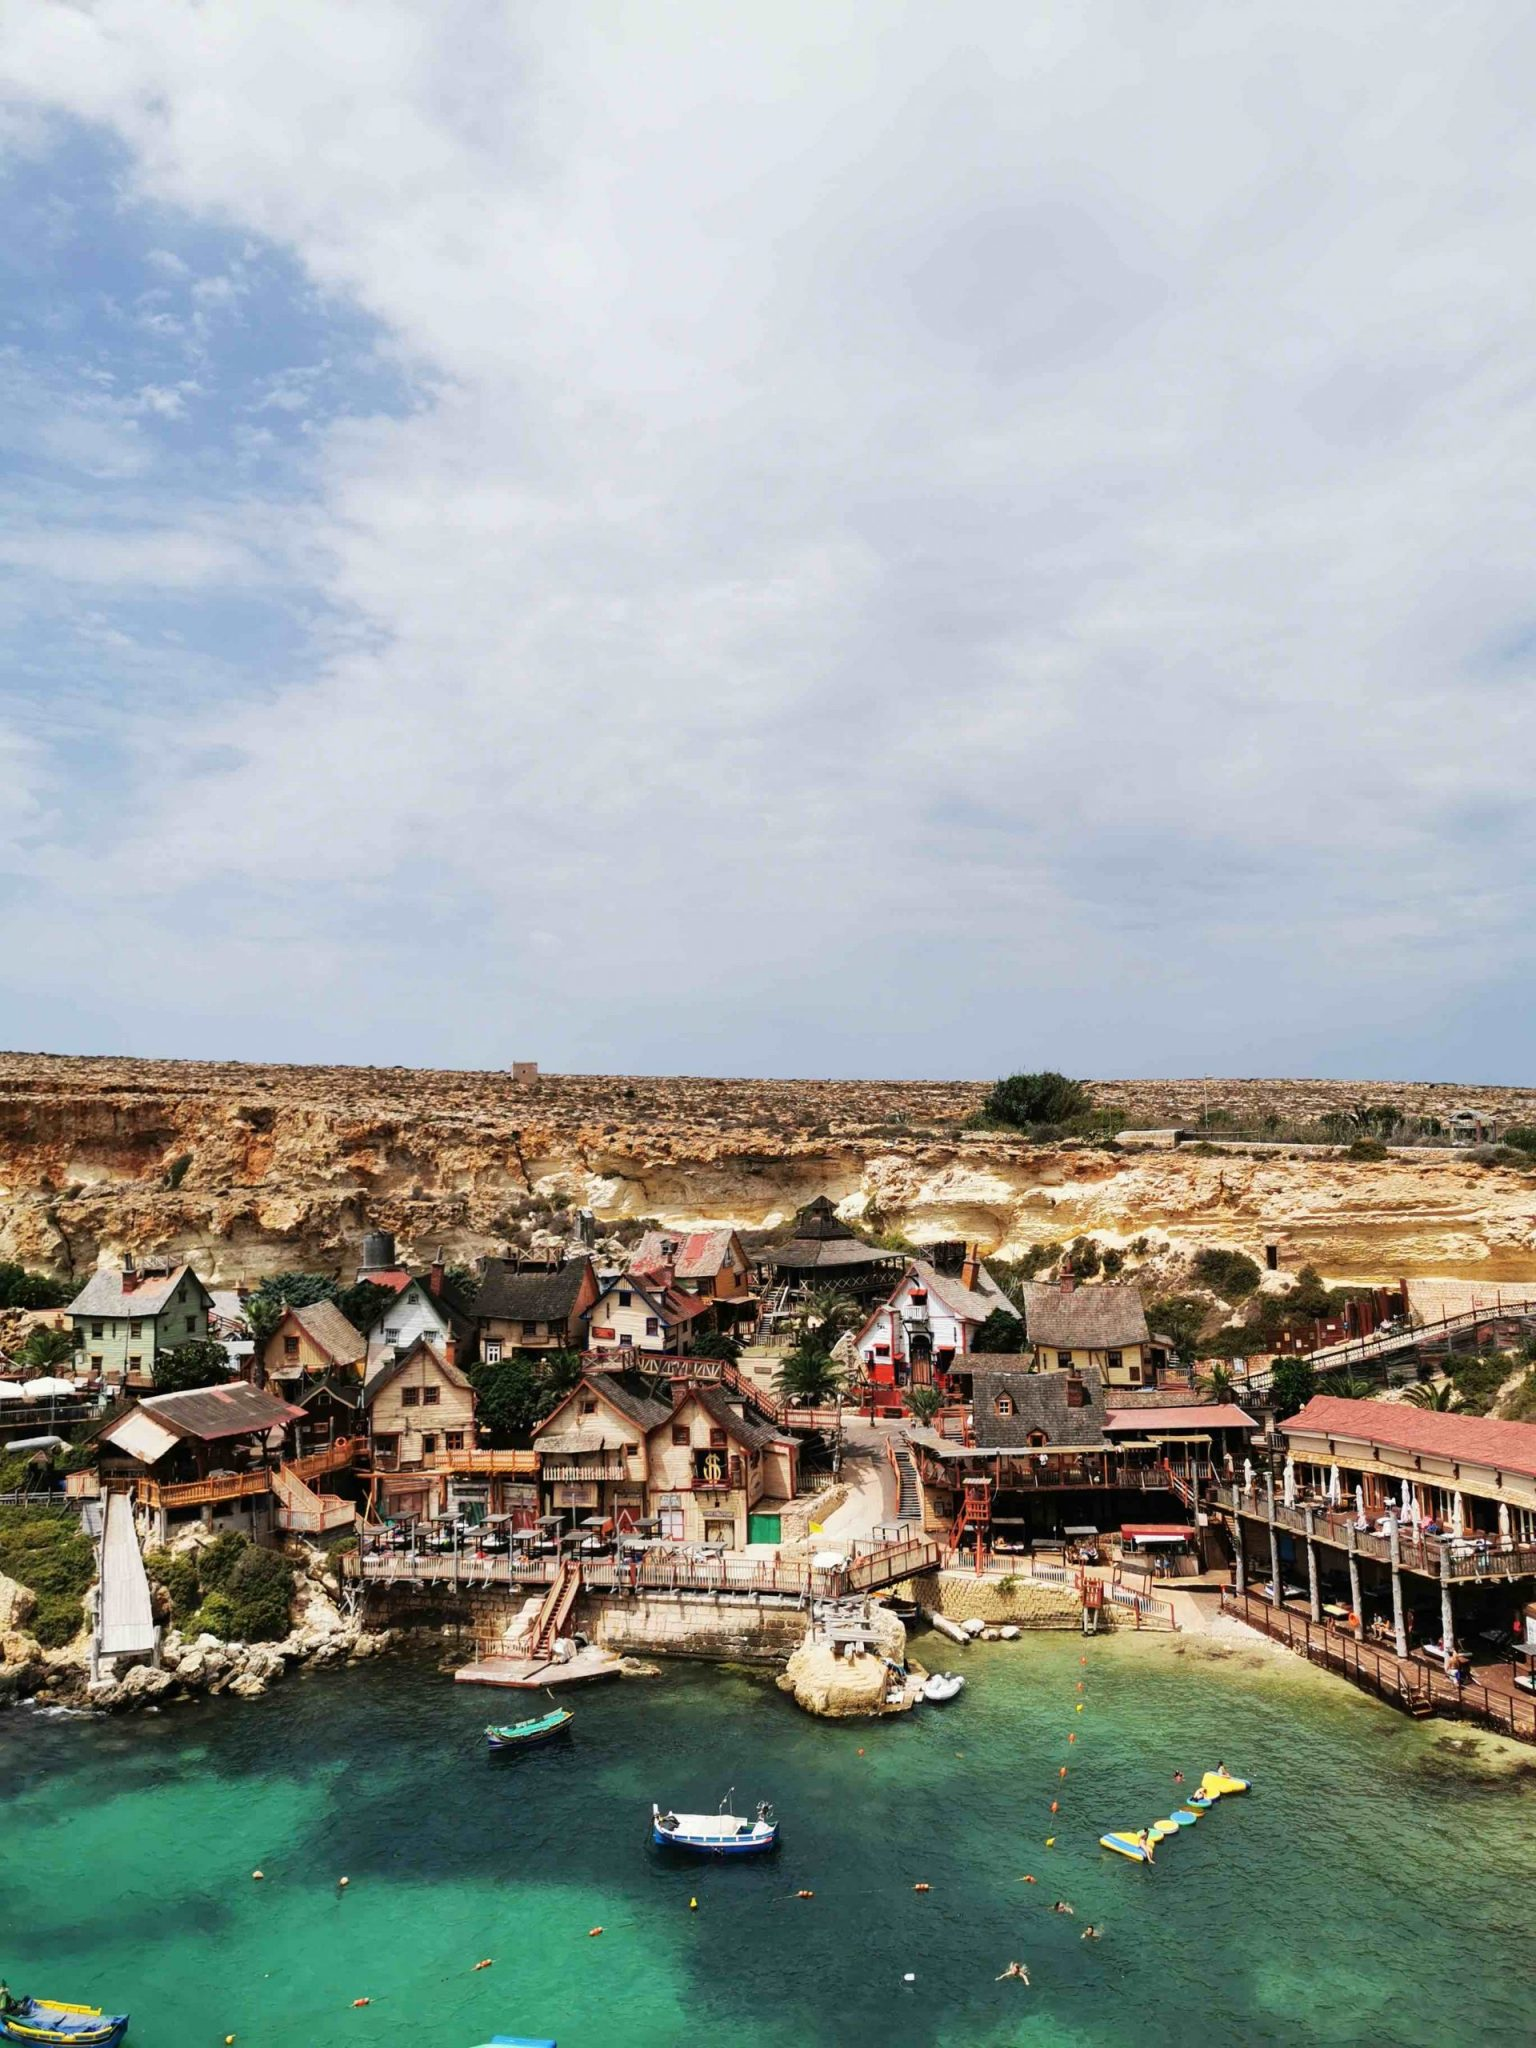 Popeye Village is one of the most popular attraction on the Island